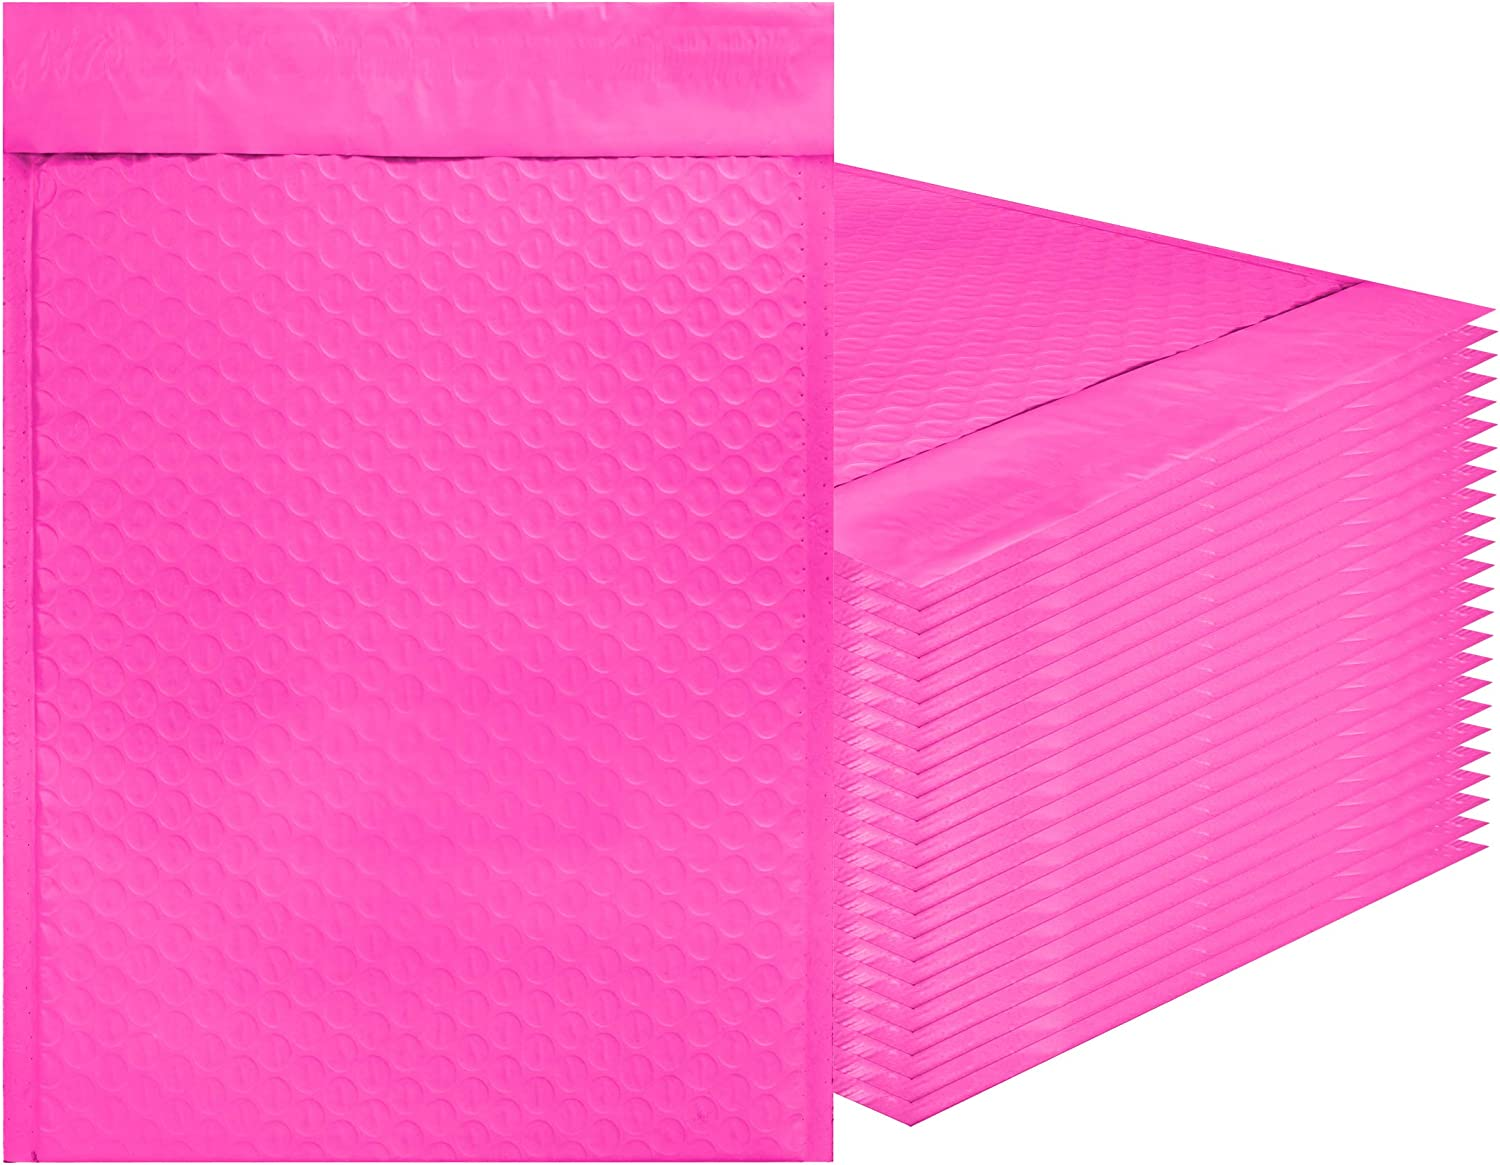 Amiff Pink Poly Bubble mailers 10.5 x 15 Padded envelopes 10 1/2 x 15. Pack of 10 Poly Cushion envelopes. Exterior Size 11.5 x 15 (11 1/2 x 15). Peel and Seal. Mailing, Shipping, Packing, Packaging.